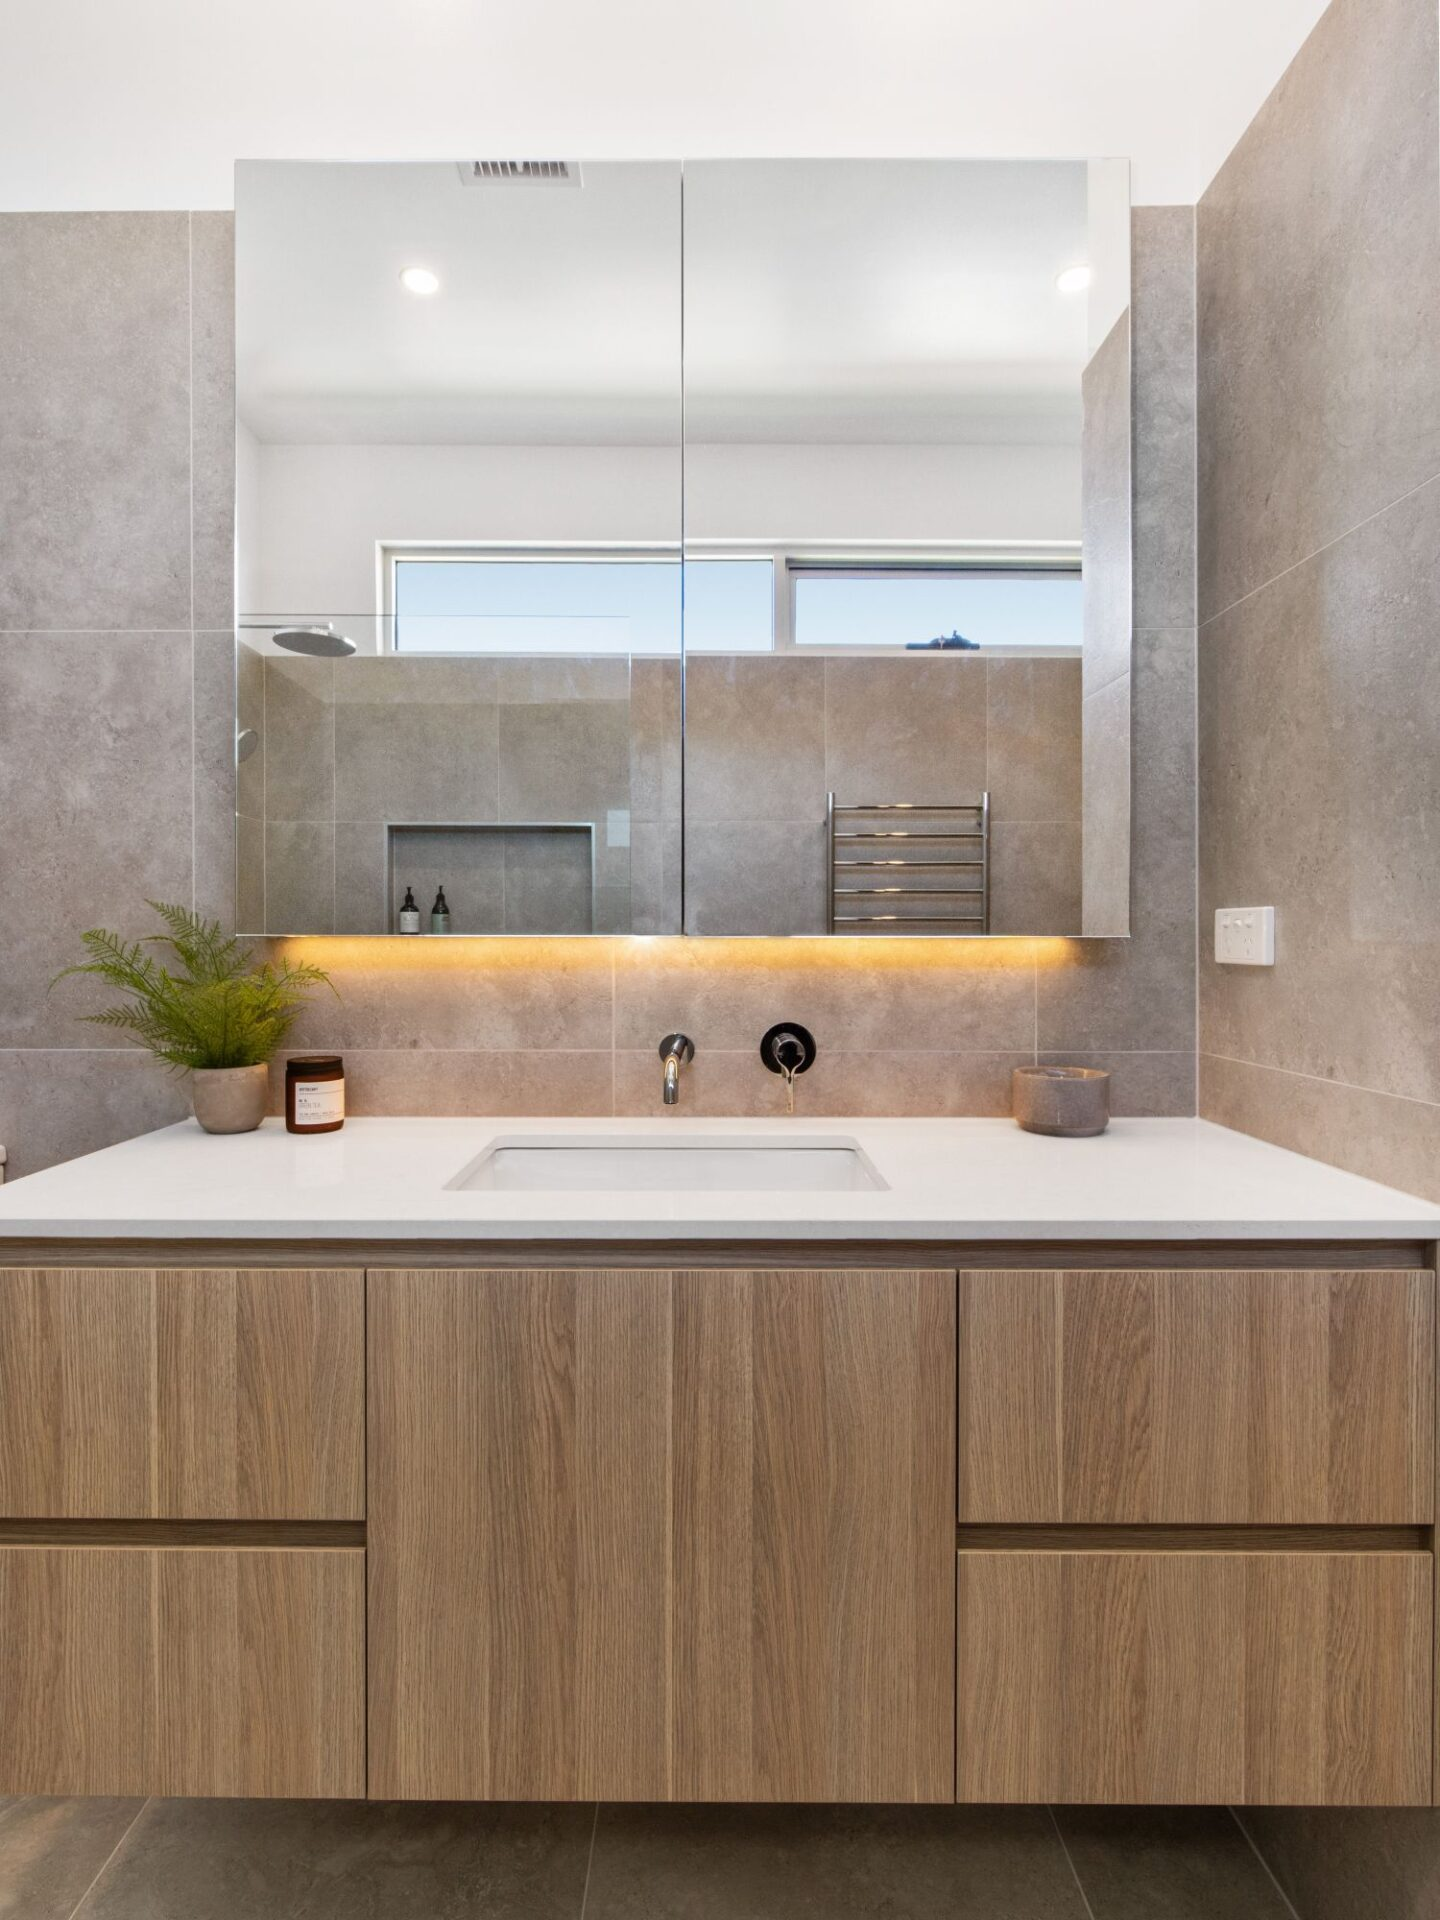 Cabinet Renovations Services - Bayview Renovations